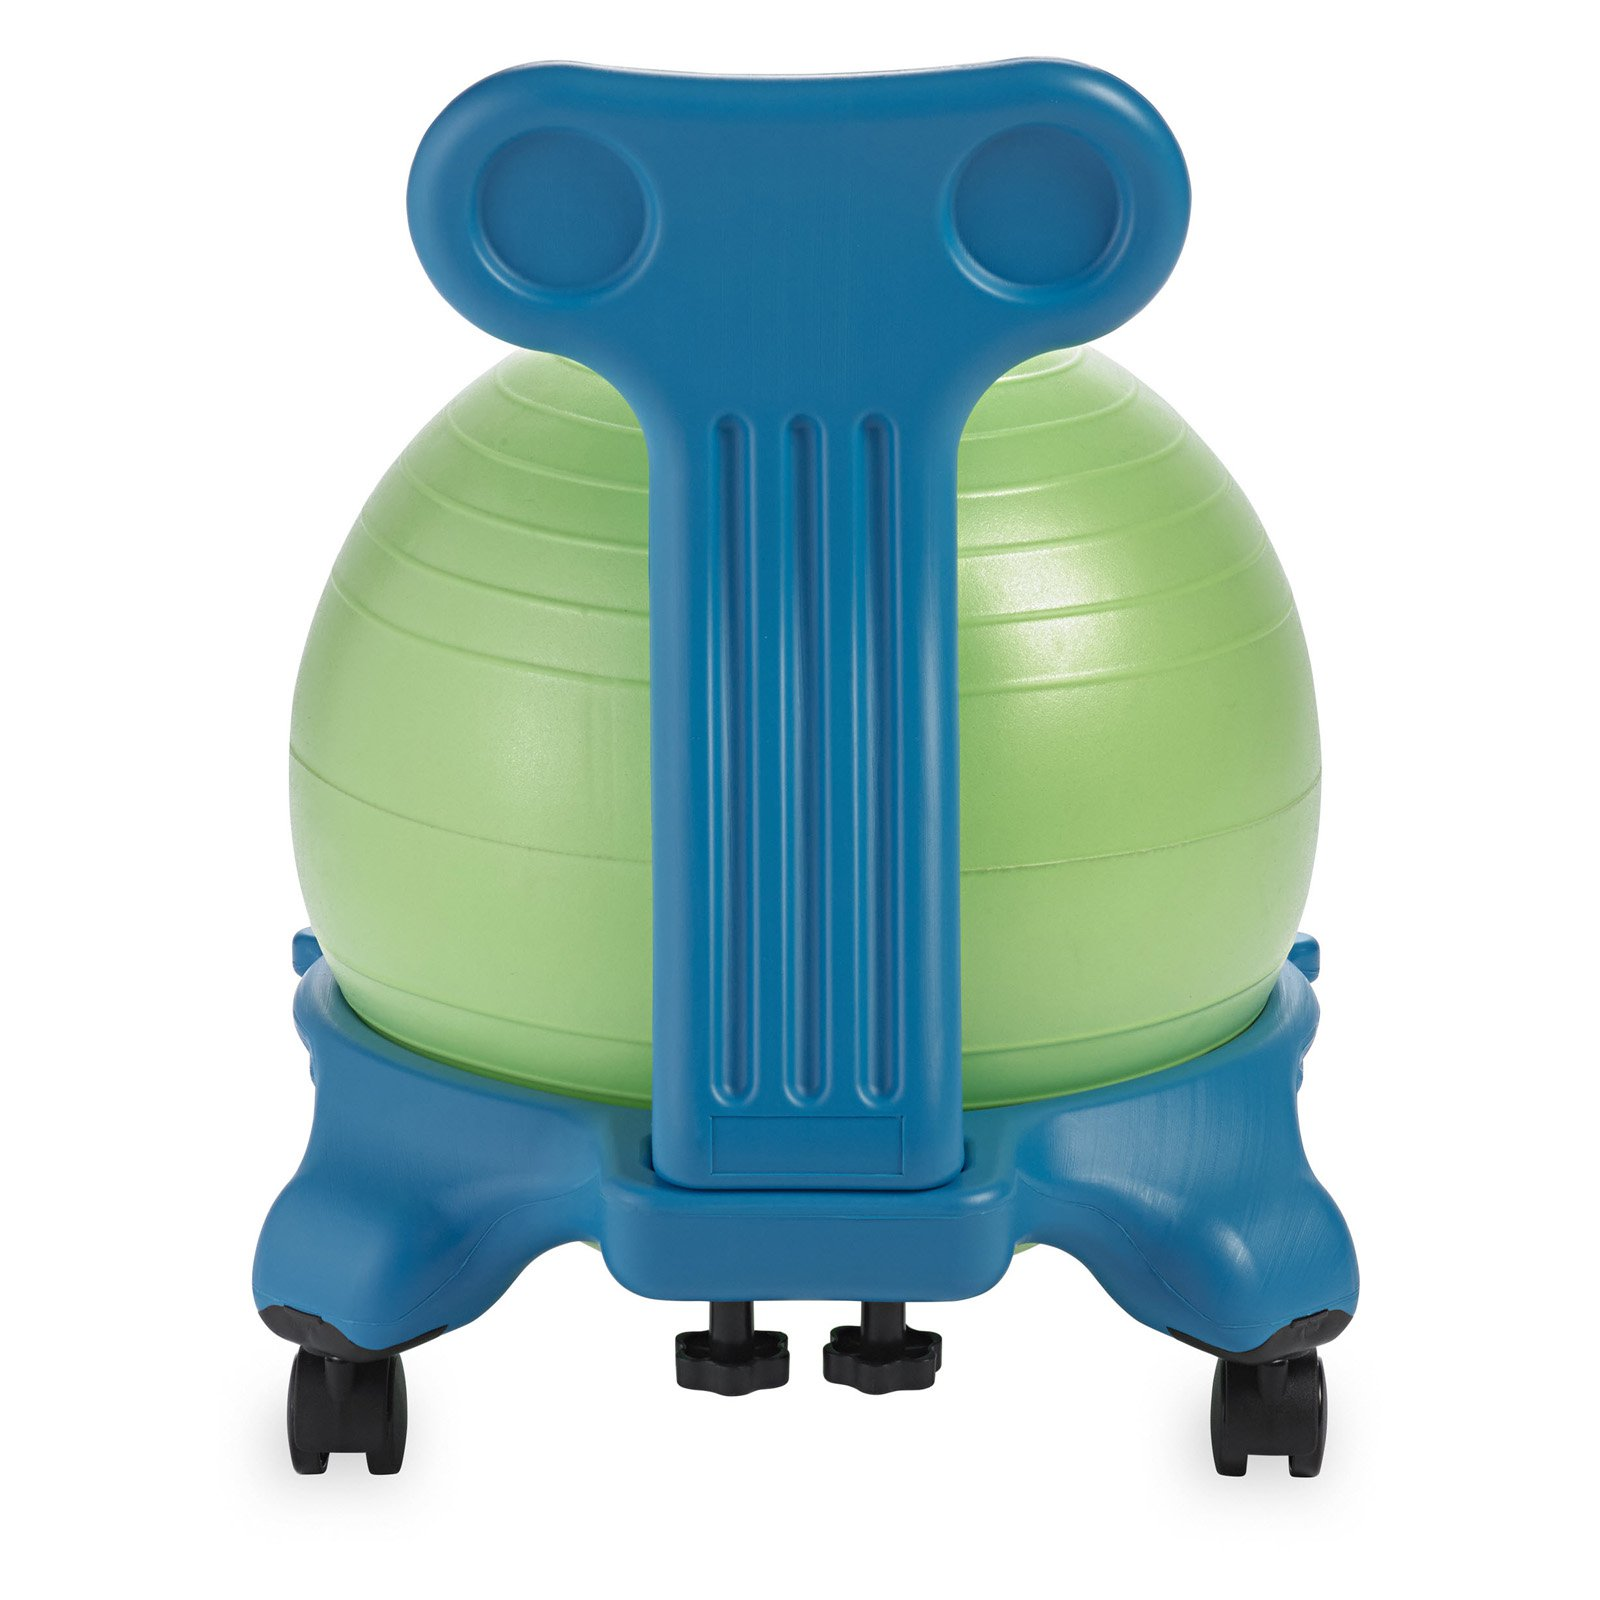 Excellent Gaiam Kids Balance Ball Chair Purple Pink Caraccident5 Cool Chair Designs And Ideas Caraccident5Info